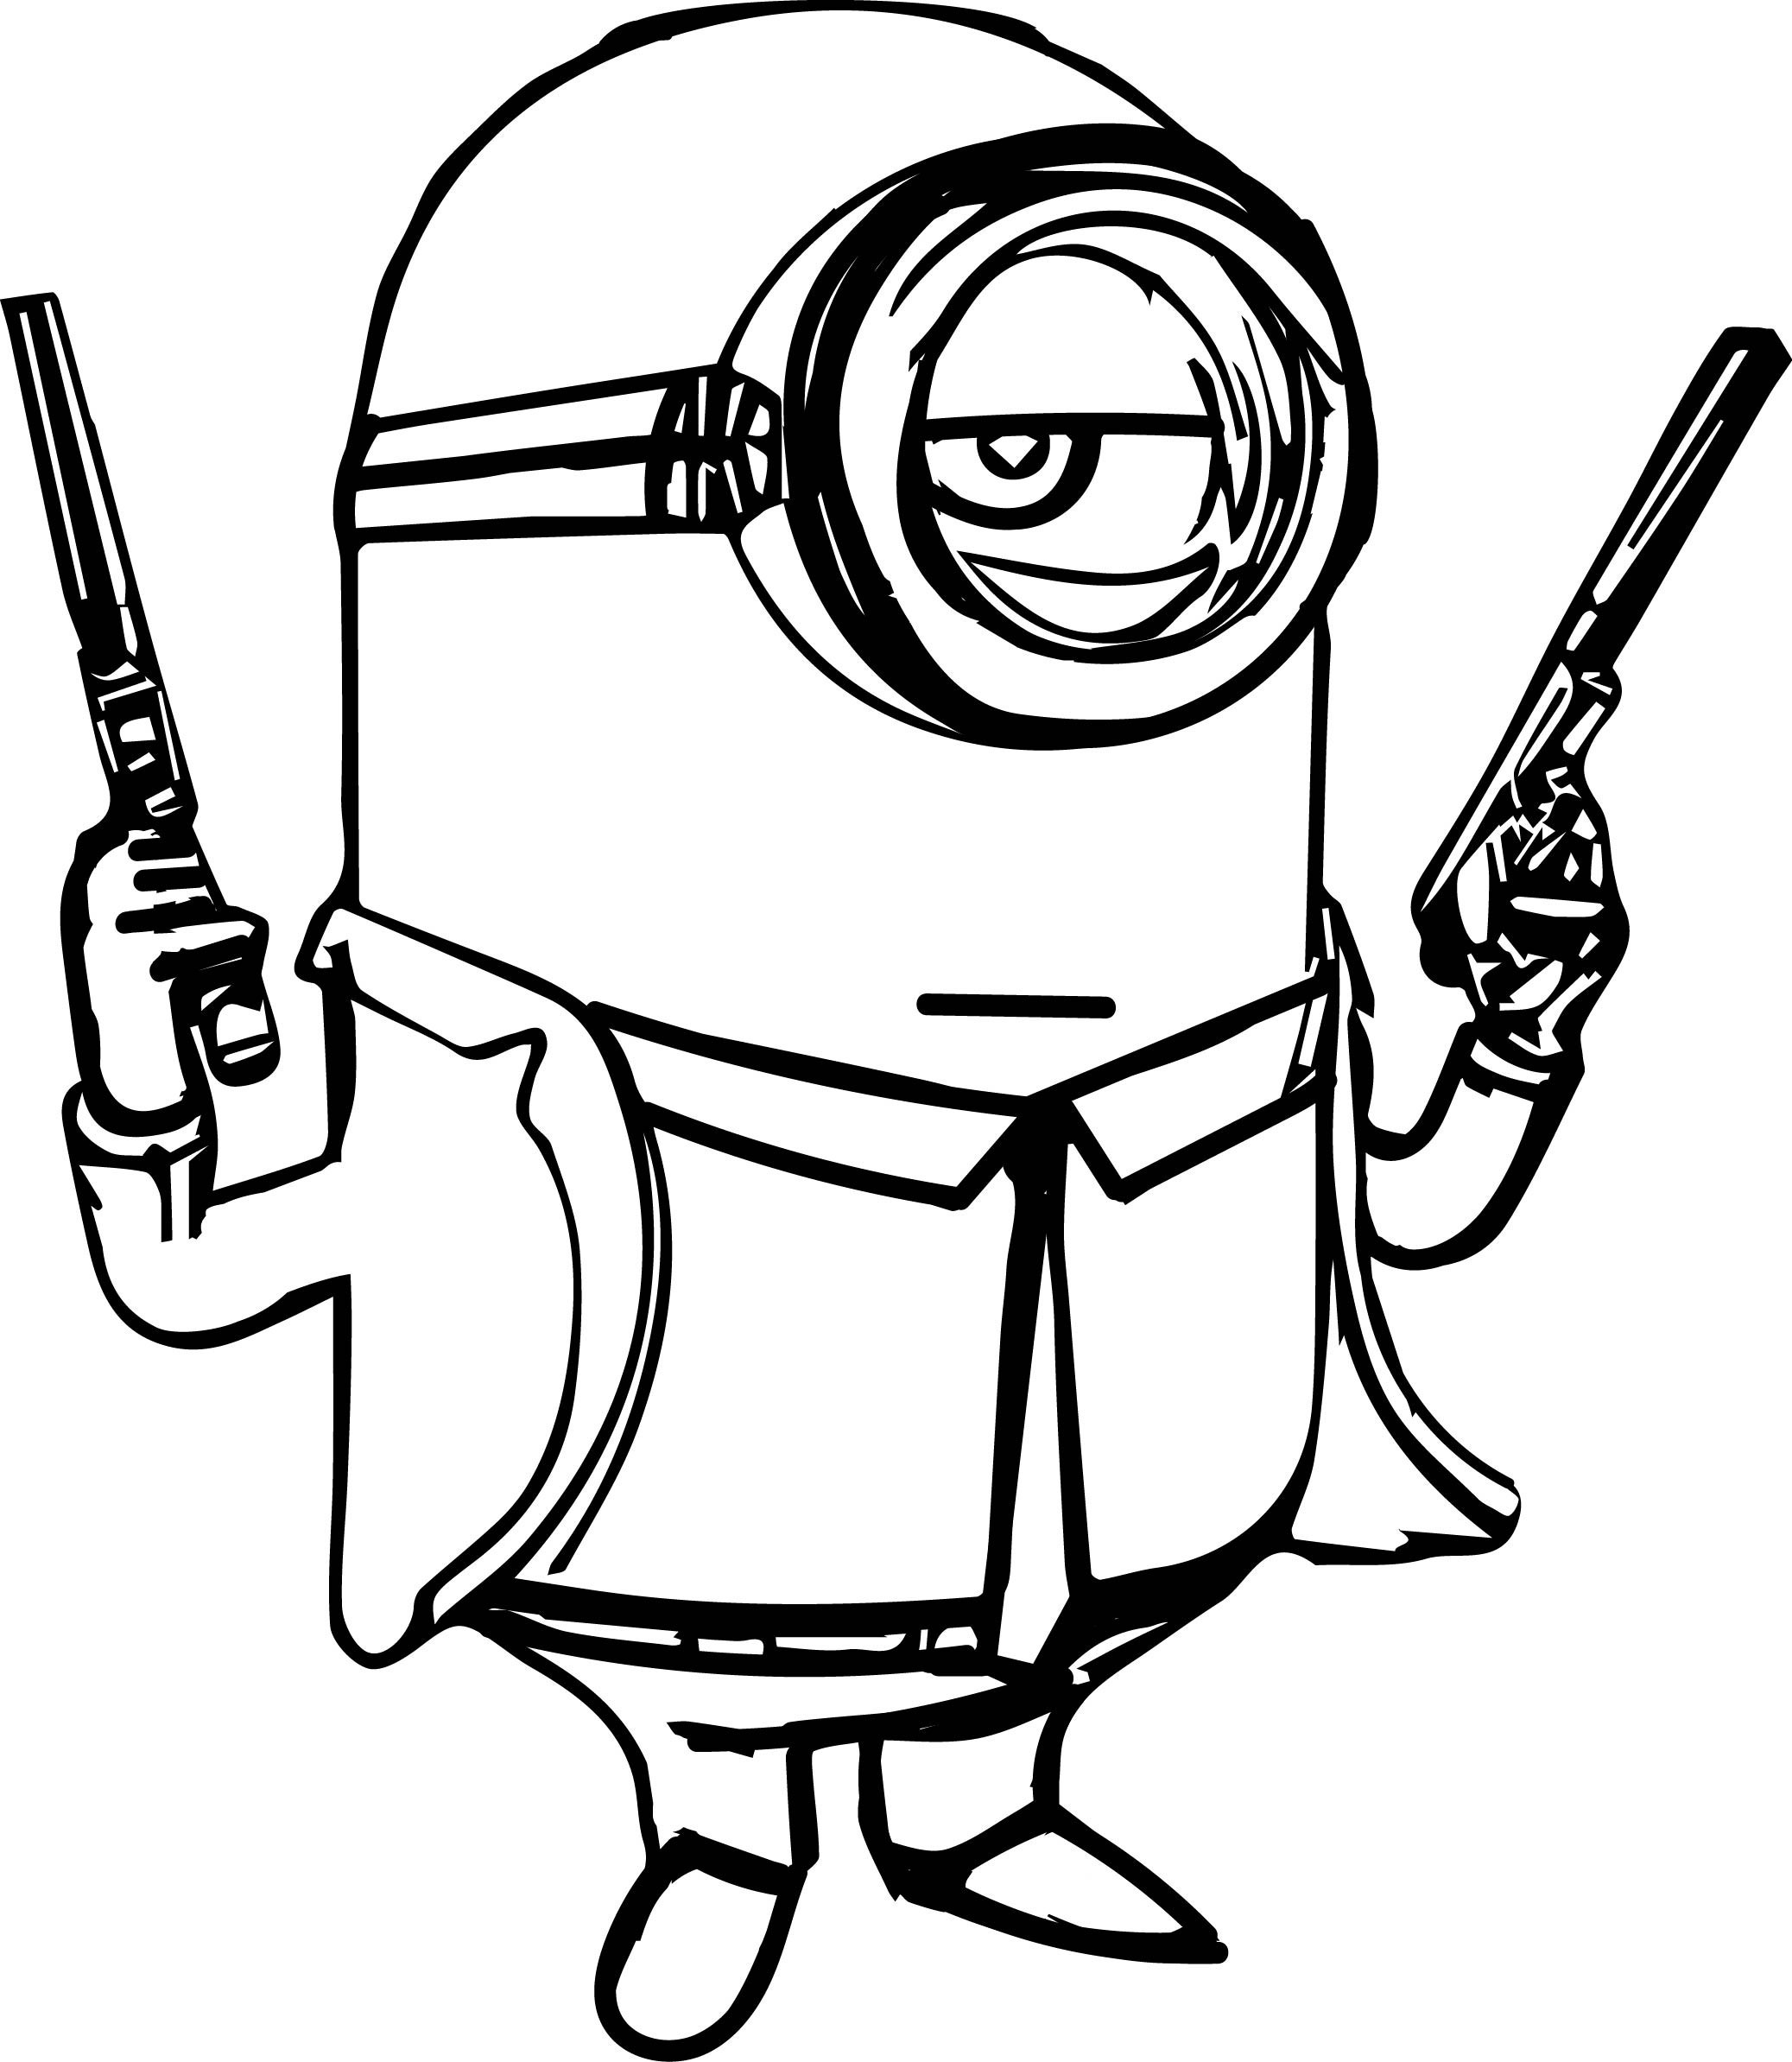 nerf gun coloring pages gun coloring pages for boys download free minigun nerf coloring nerf pages gun